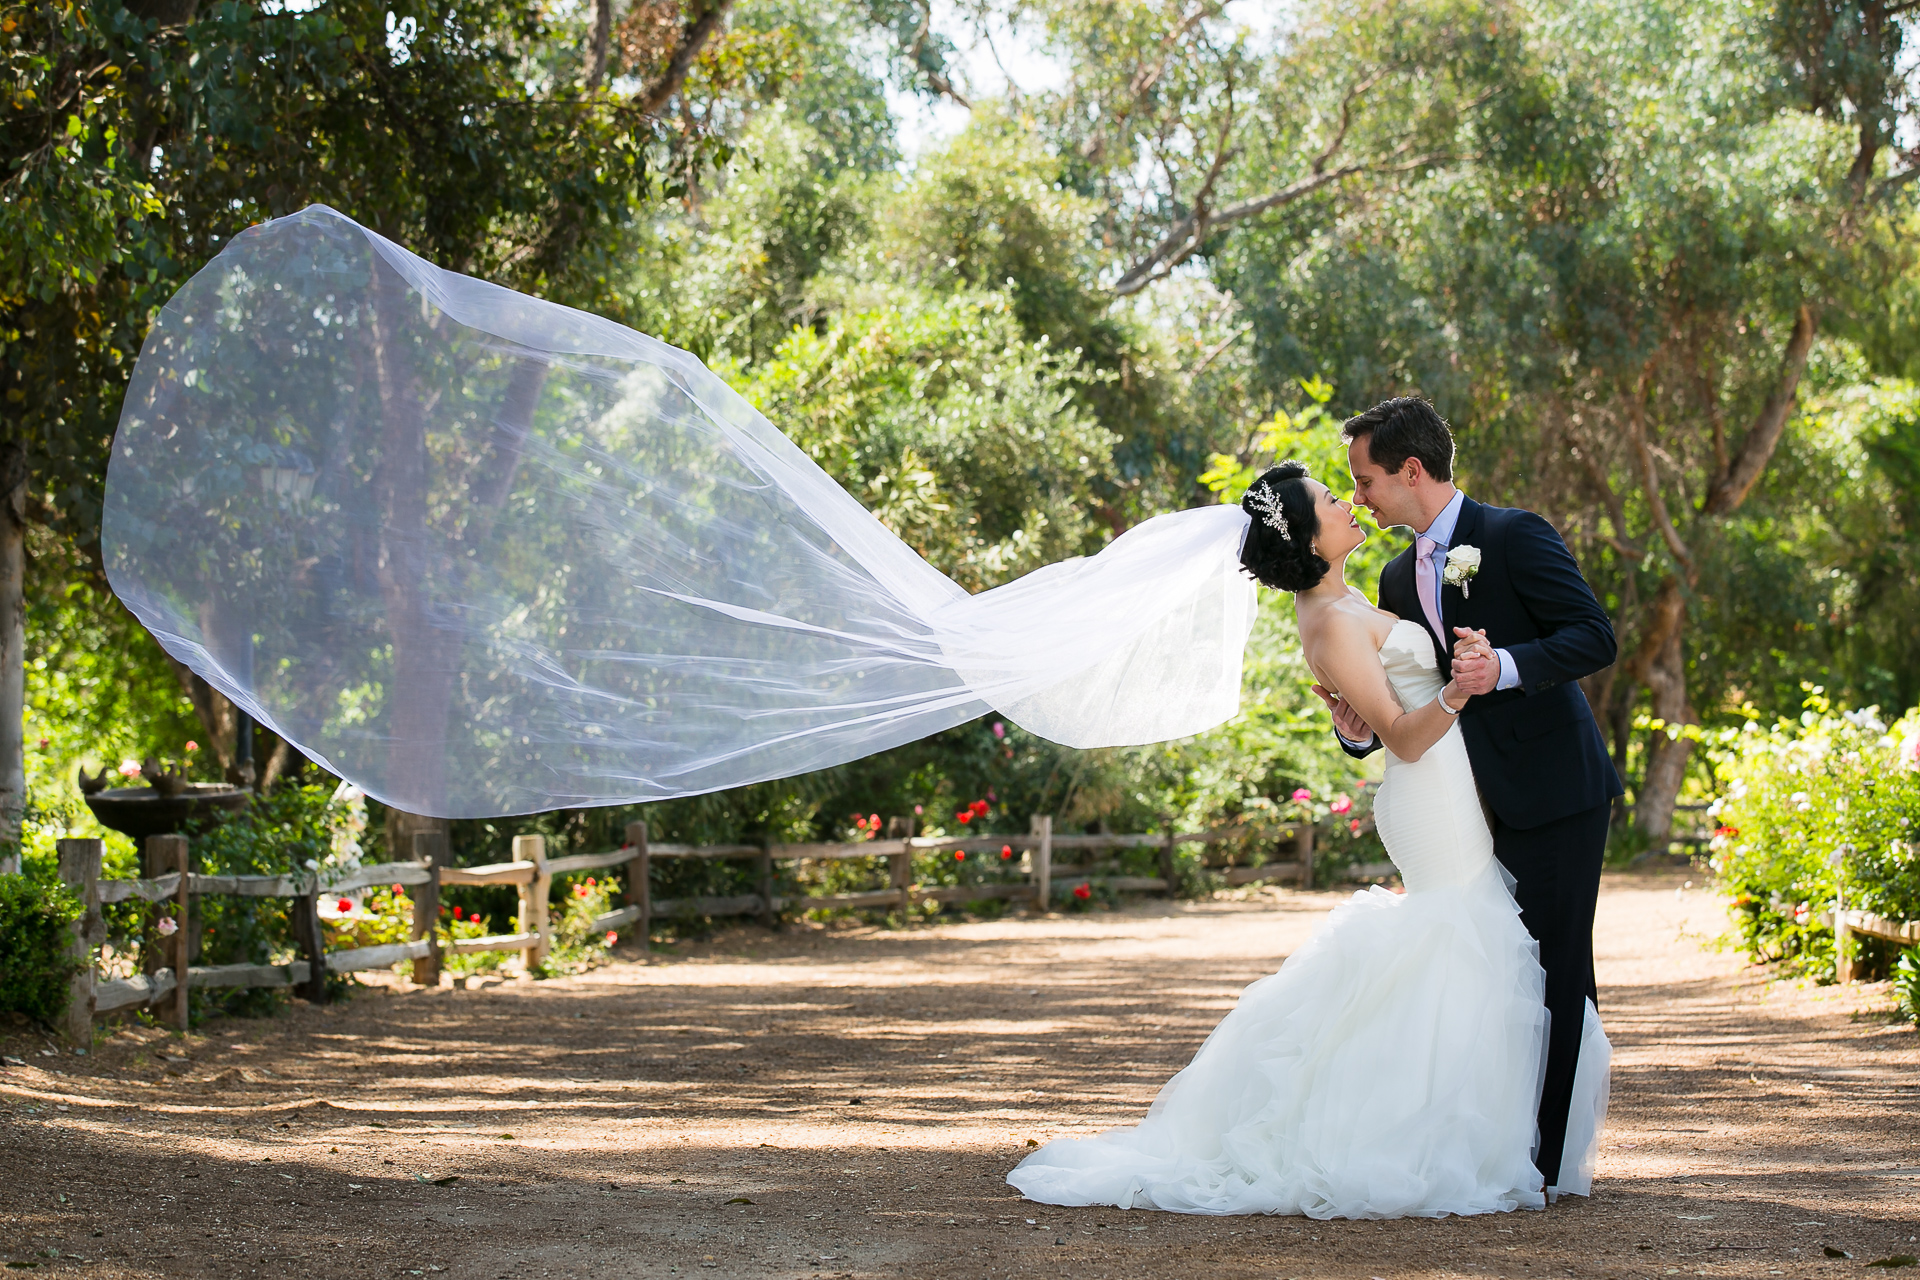 Temecula Wedding Photography: Gorgeous Lake Oak Meadows Temecula Wedding